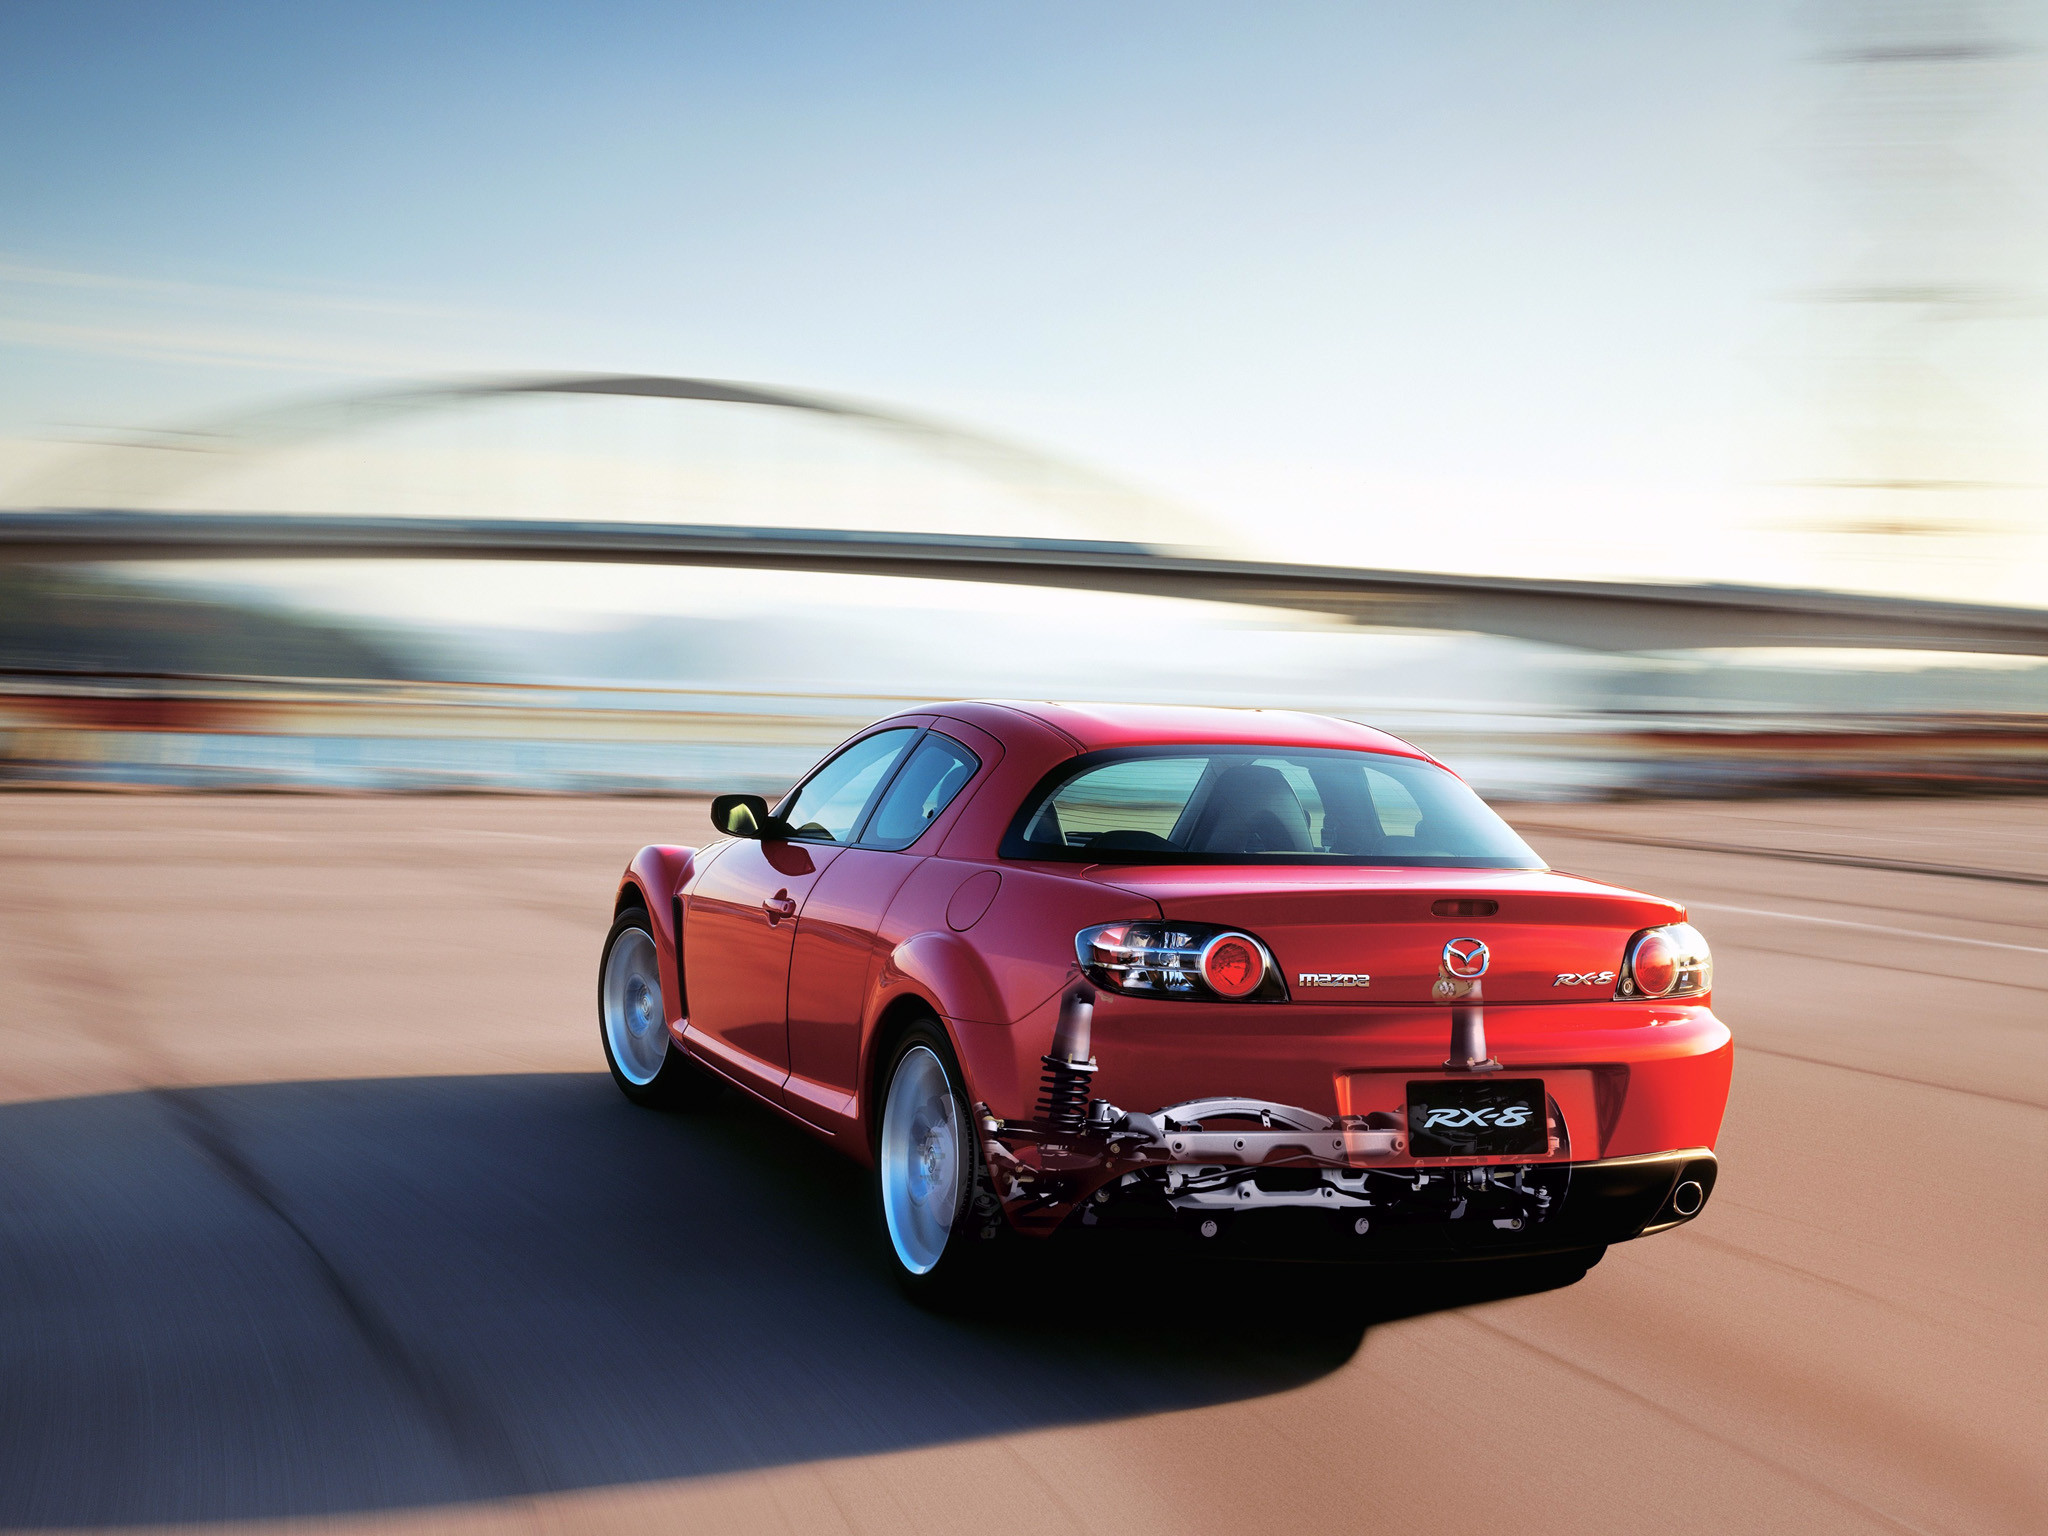 Mazda Rx 8 Wallpapers: Mazda Rx8 Wallpapers (56+ Background Pictures